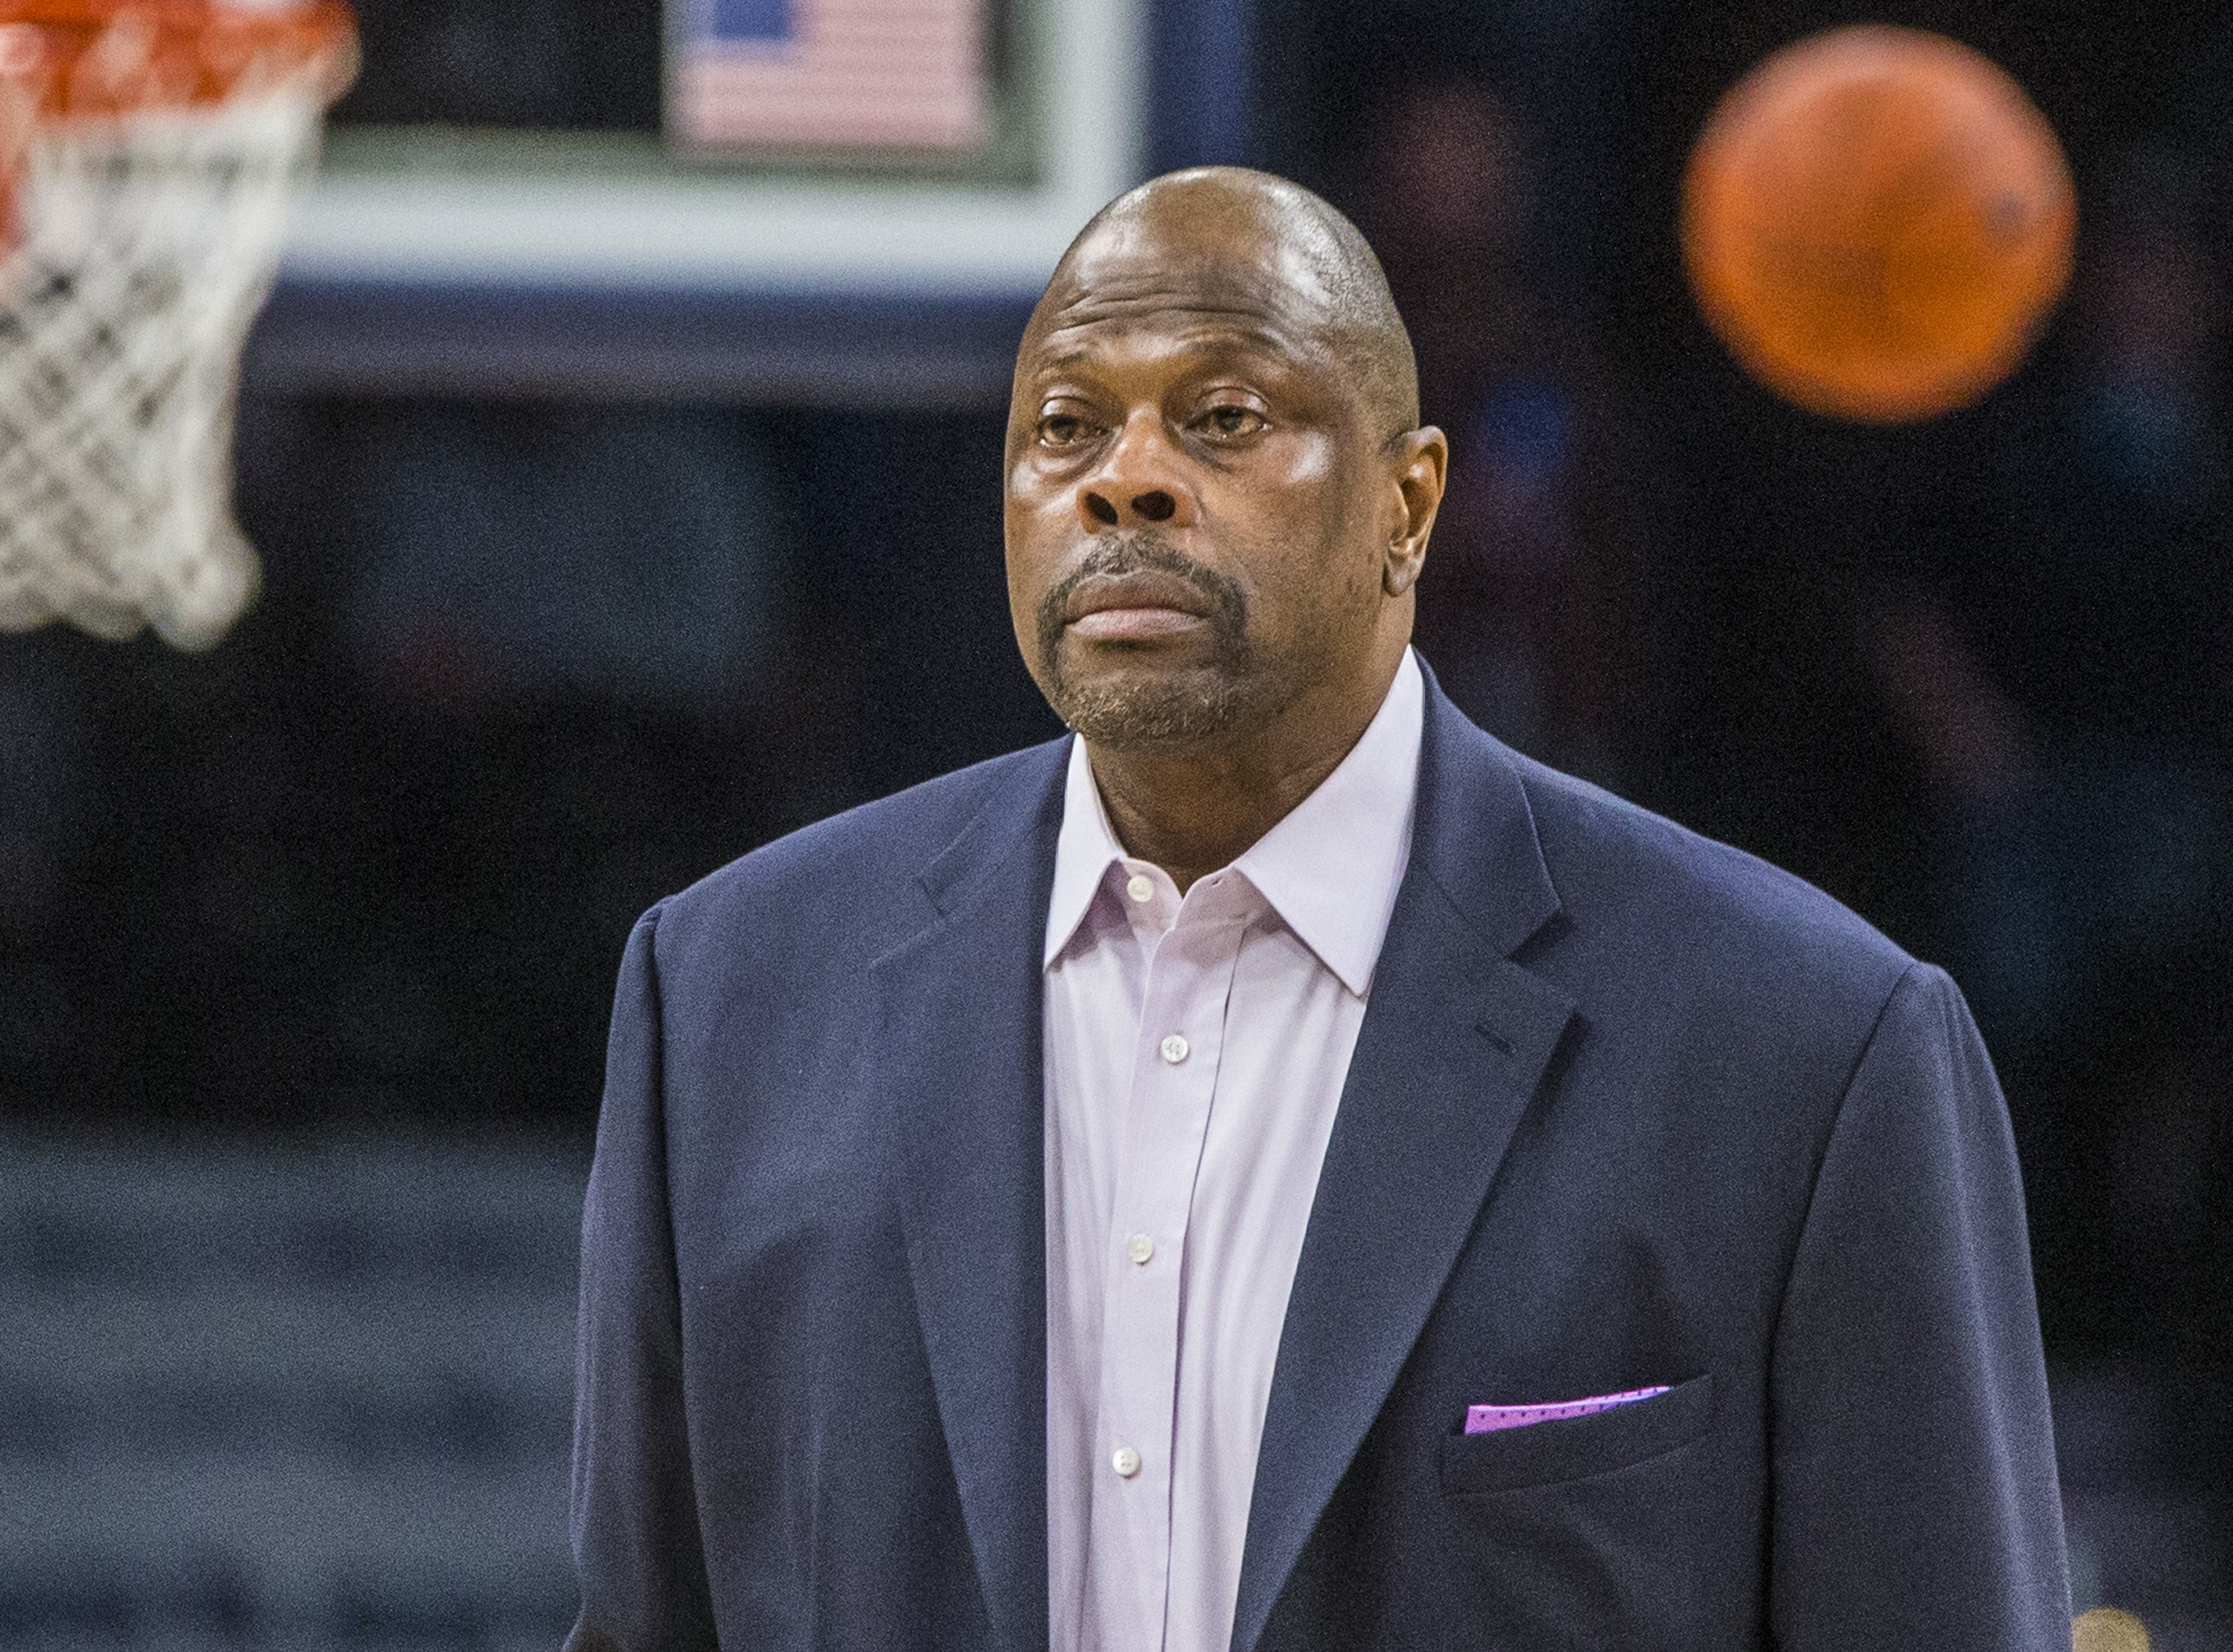 Patrick Ewing head during a game between Butler and Georgetown at Capital One Arena on January 28, 2020 in Washington, DC | Photo: GettyImages